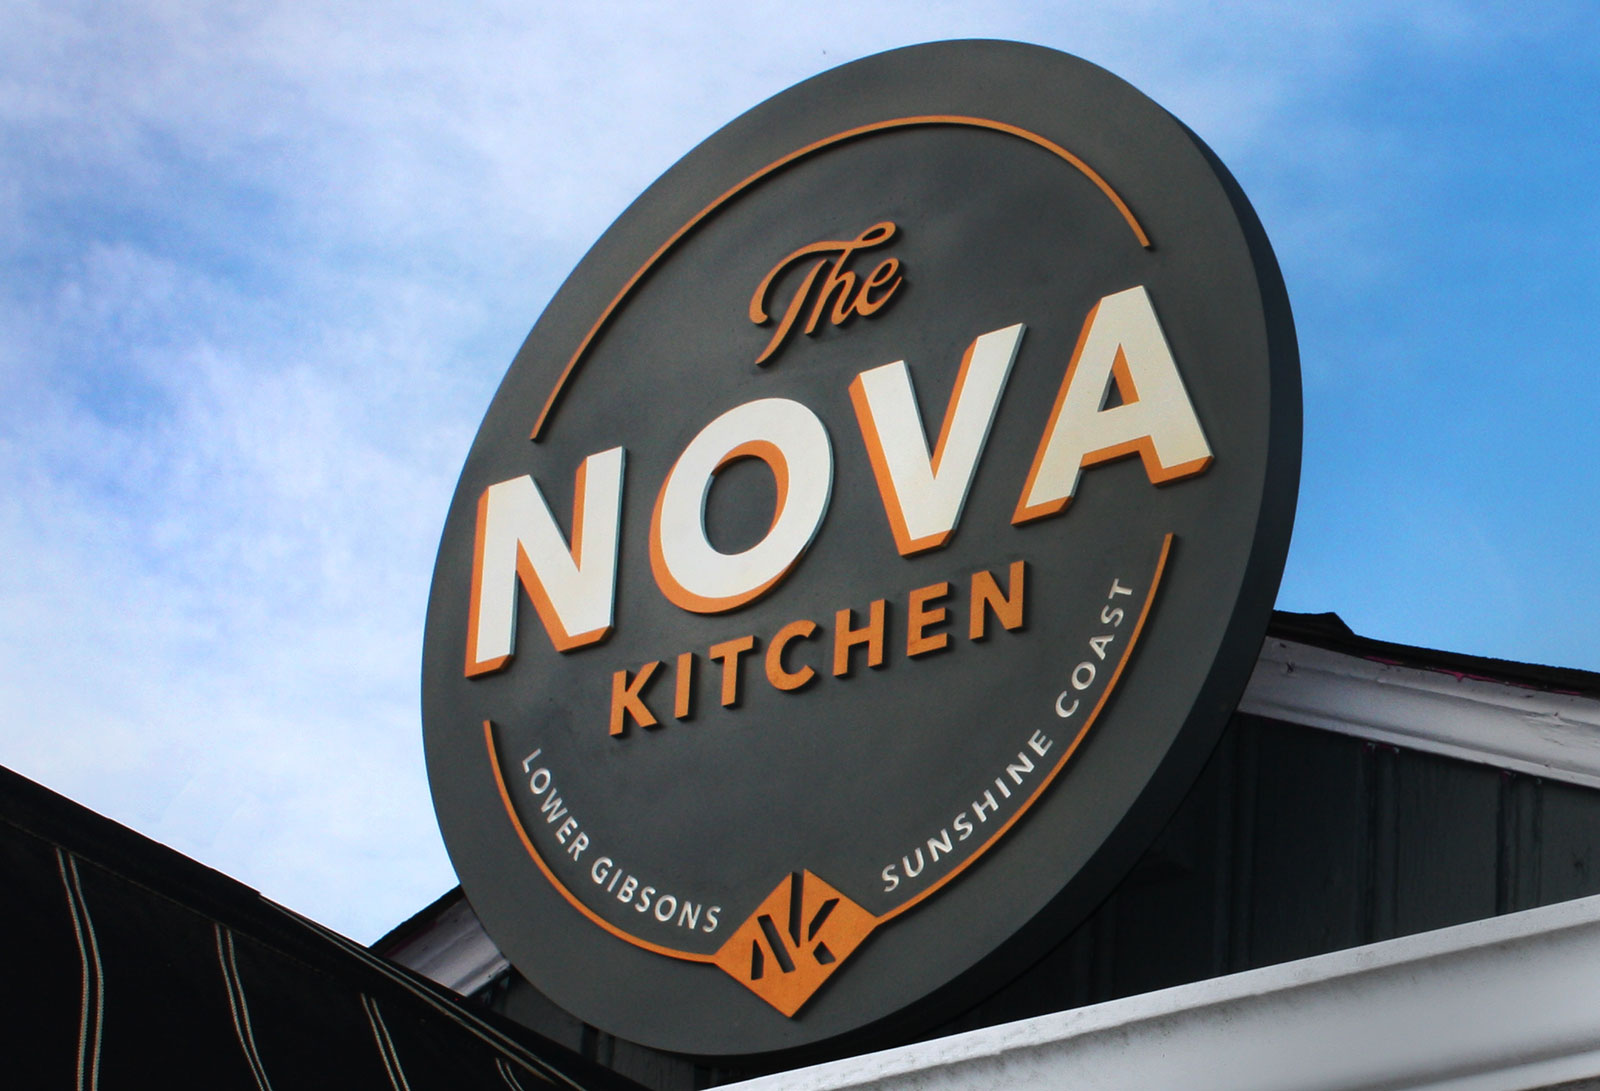 Dimensional sign for Nova Kitchen in Gibsons.